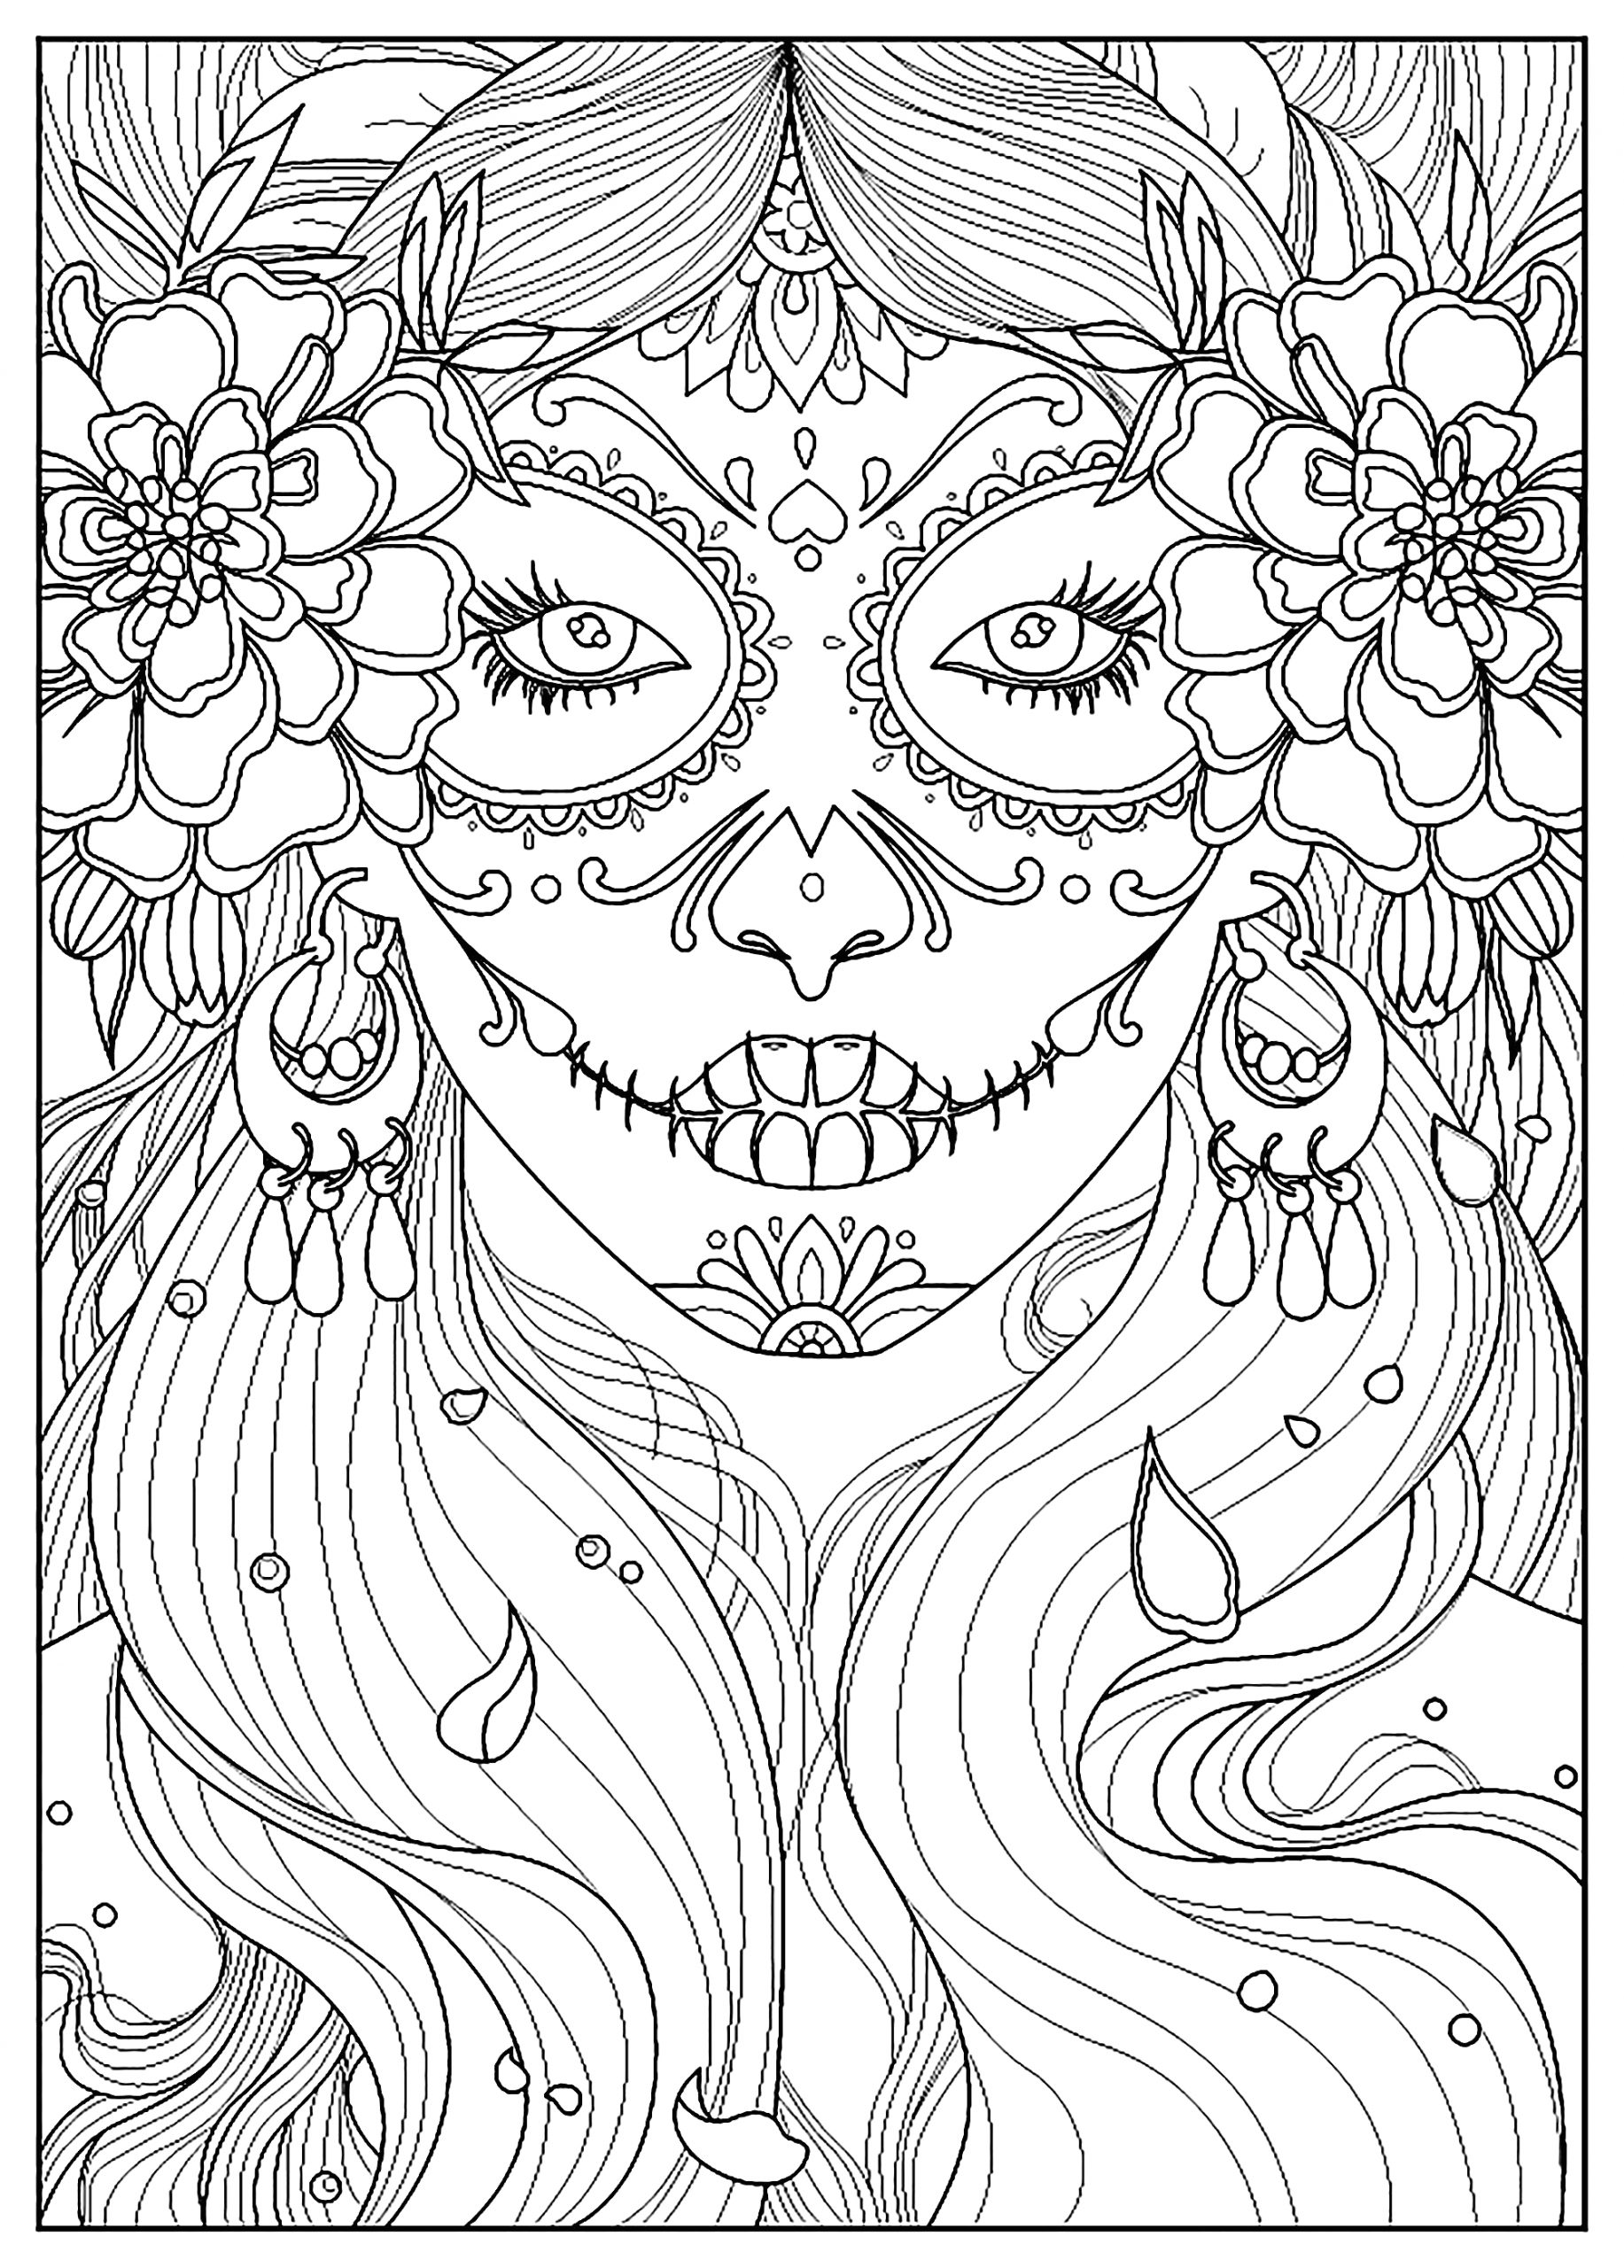 Day Of the Dead Adult Coloring Pages Day Of the Dead El Da De Los Muertos Adult Coloring Pages